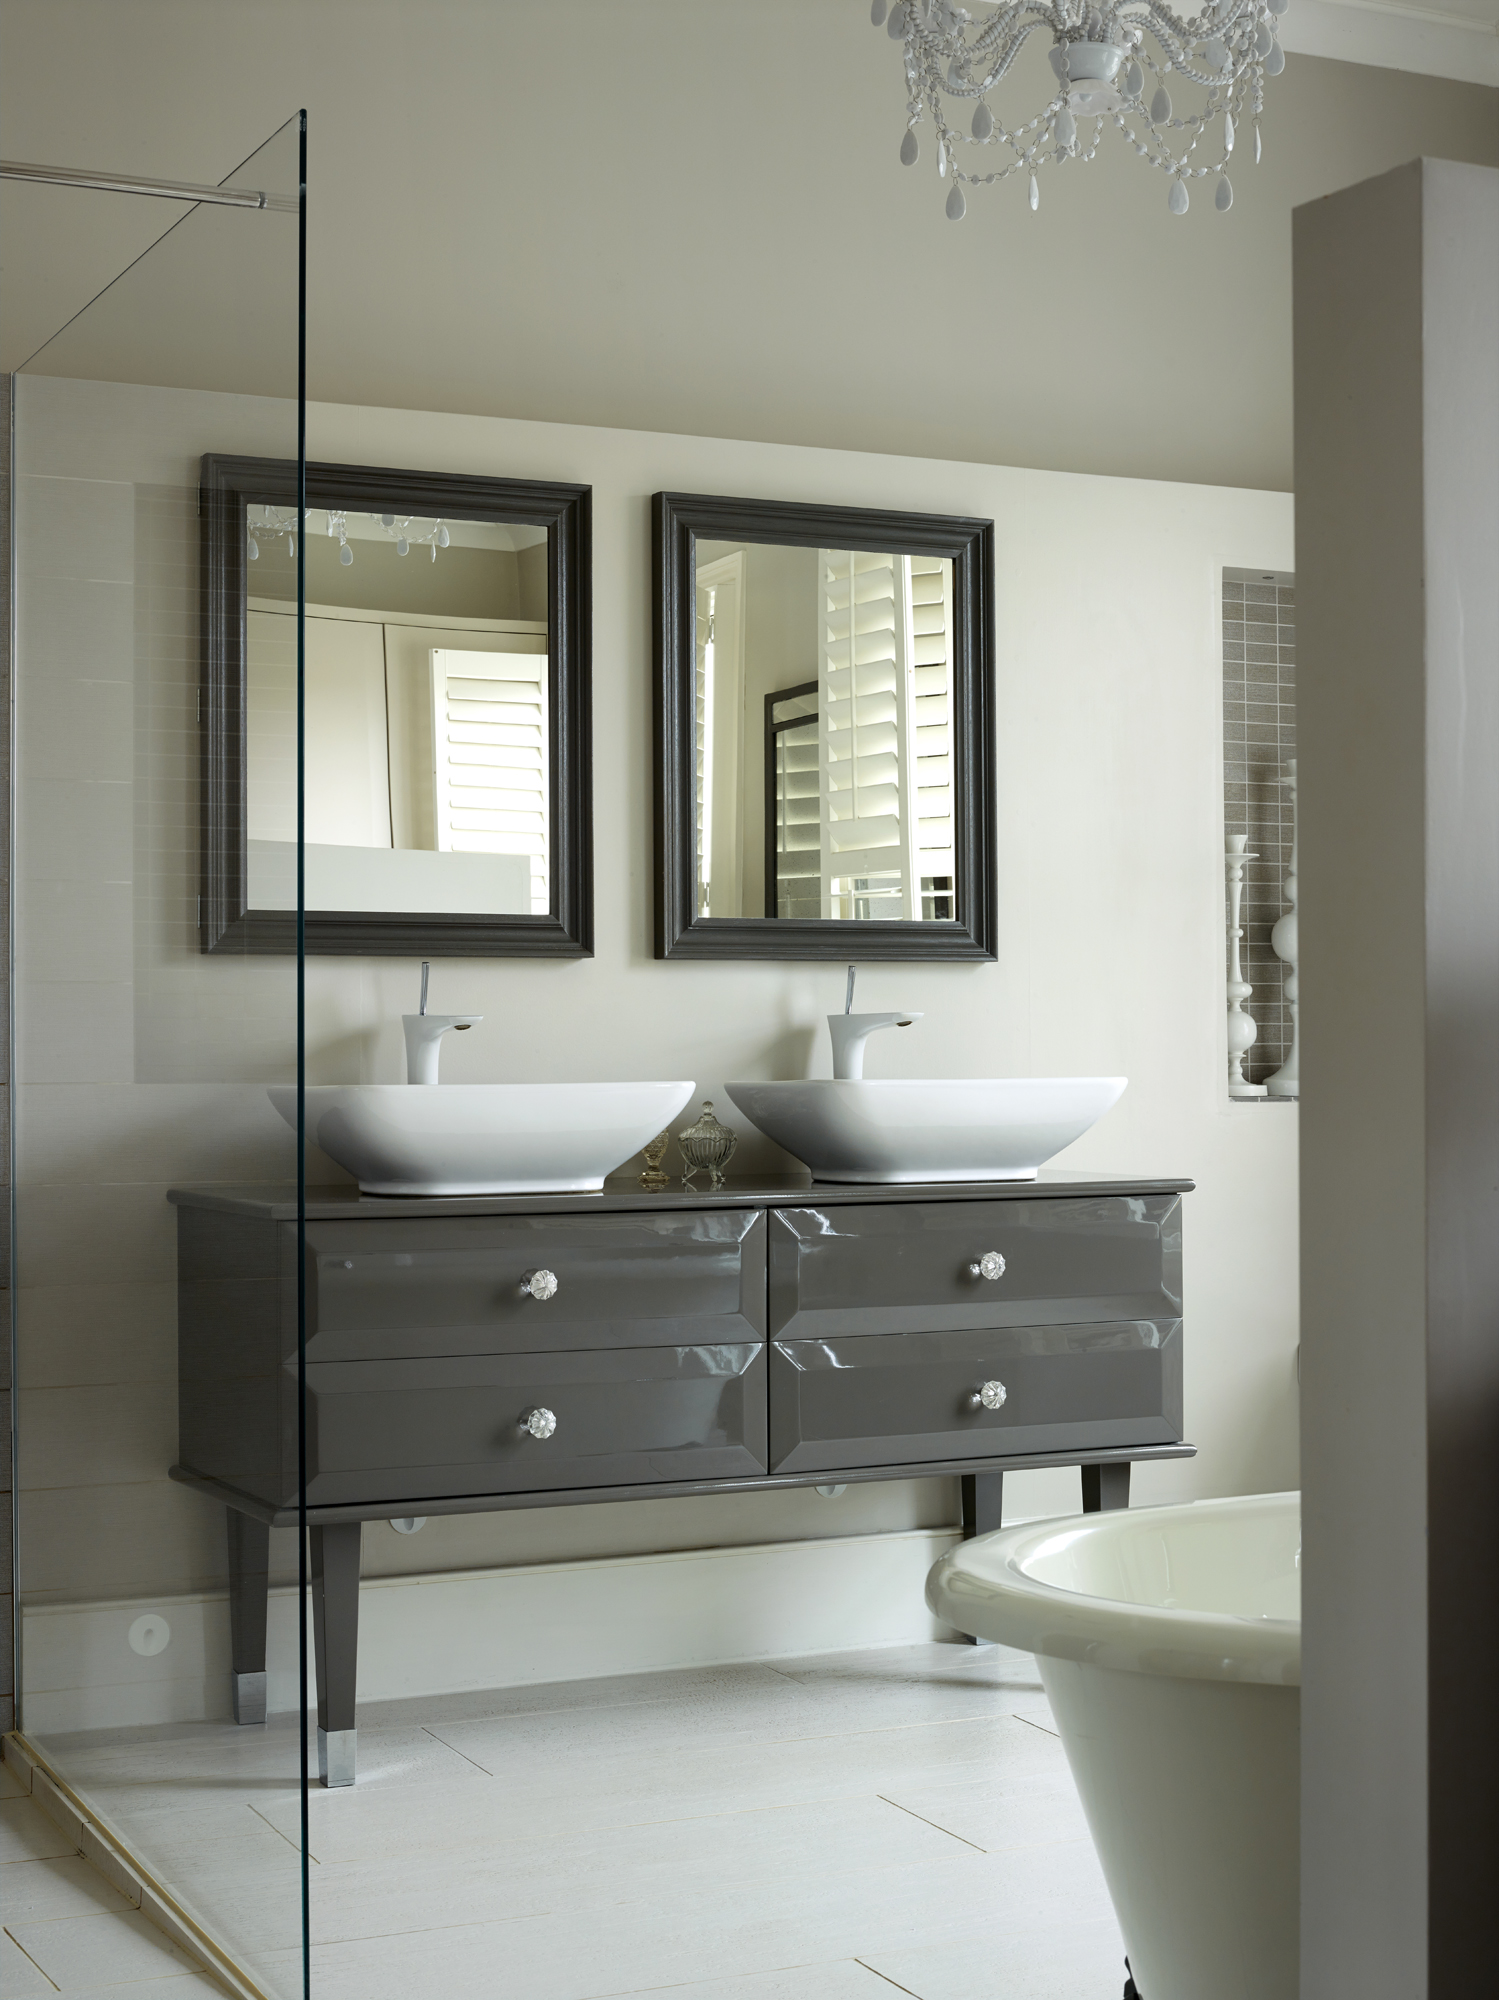 Bathroom featuring a double vanity unit - Crouch End, London, by Caz Myers